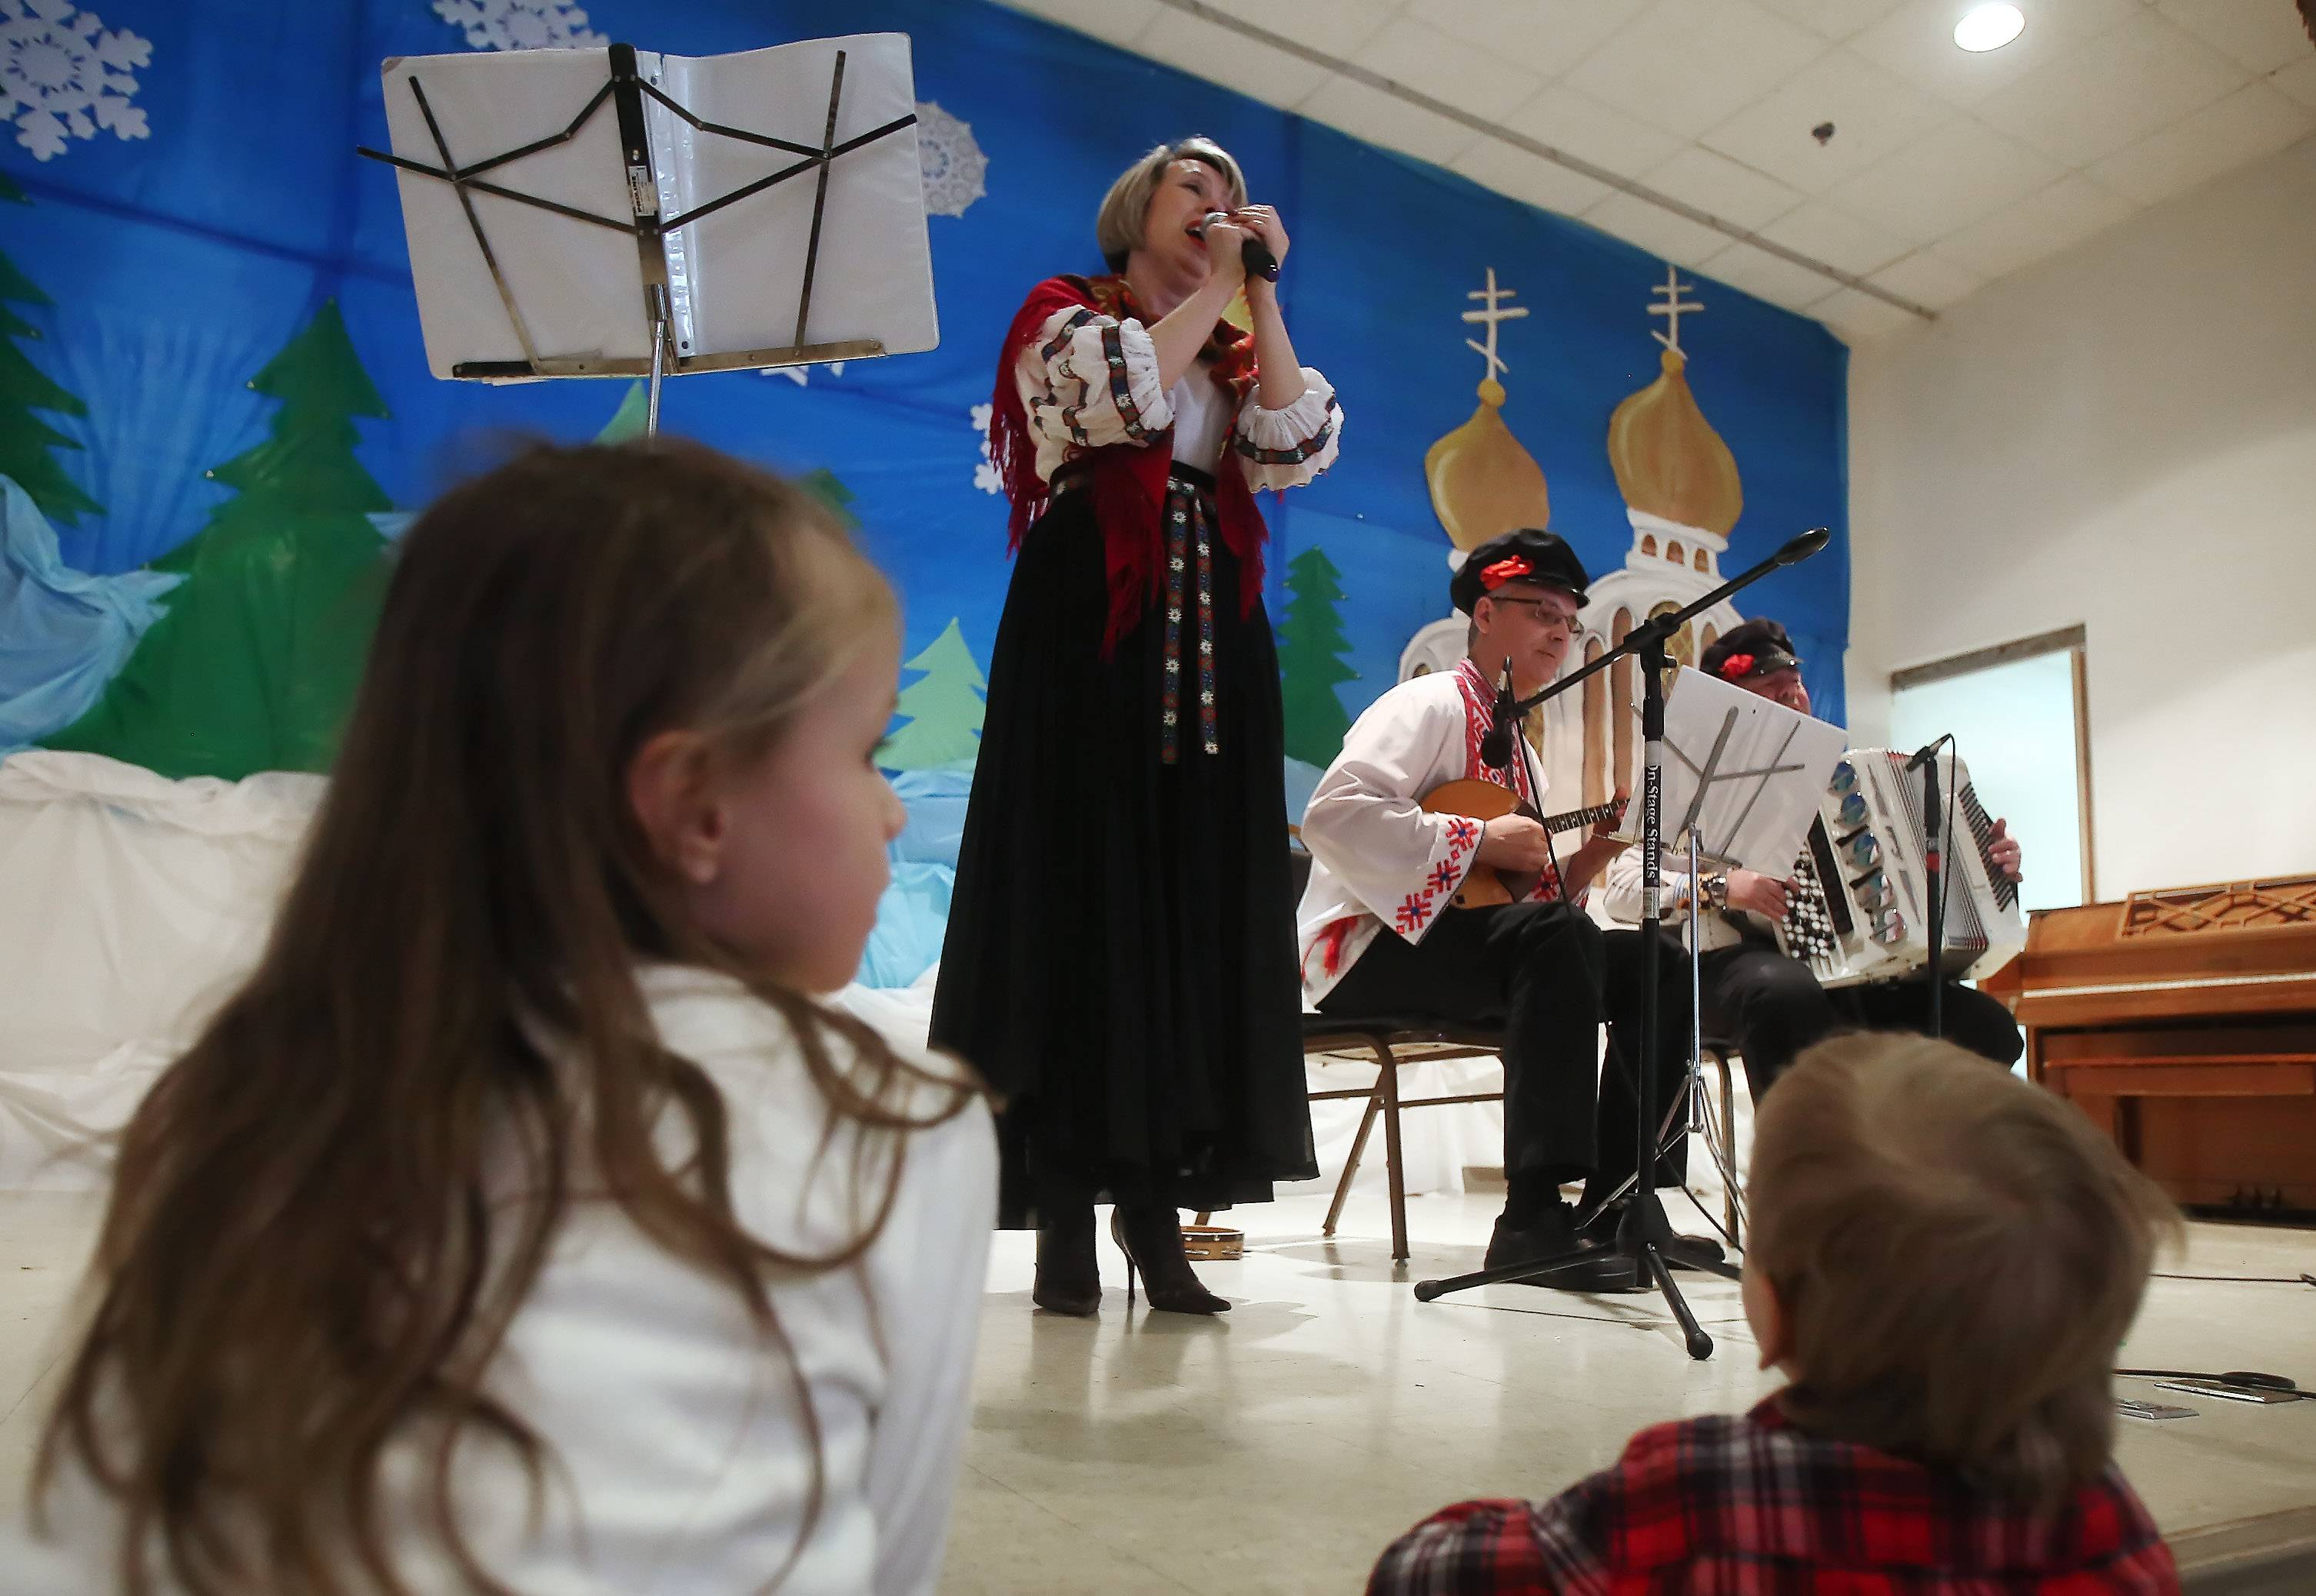 Children watch the Chicago Cossacks perform during the sixth annual Russian Winter Festival Sunday at the Holy Virgin Protection Russian Orthodox Cathedral in Des Plaines. The festival featured old-country traditions, folk music and traditional Russian foods and vodka.